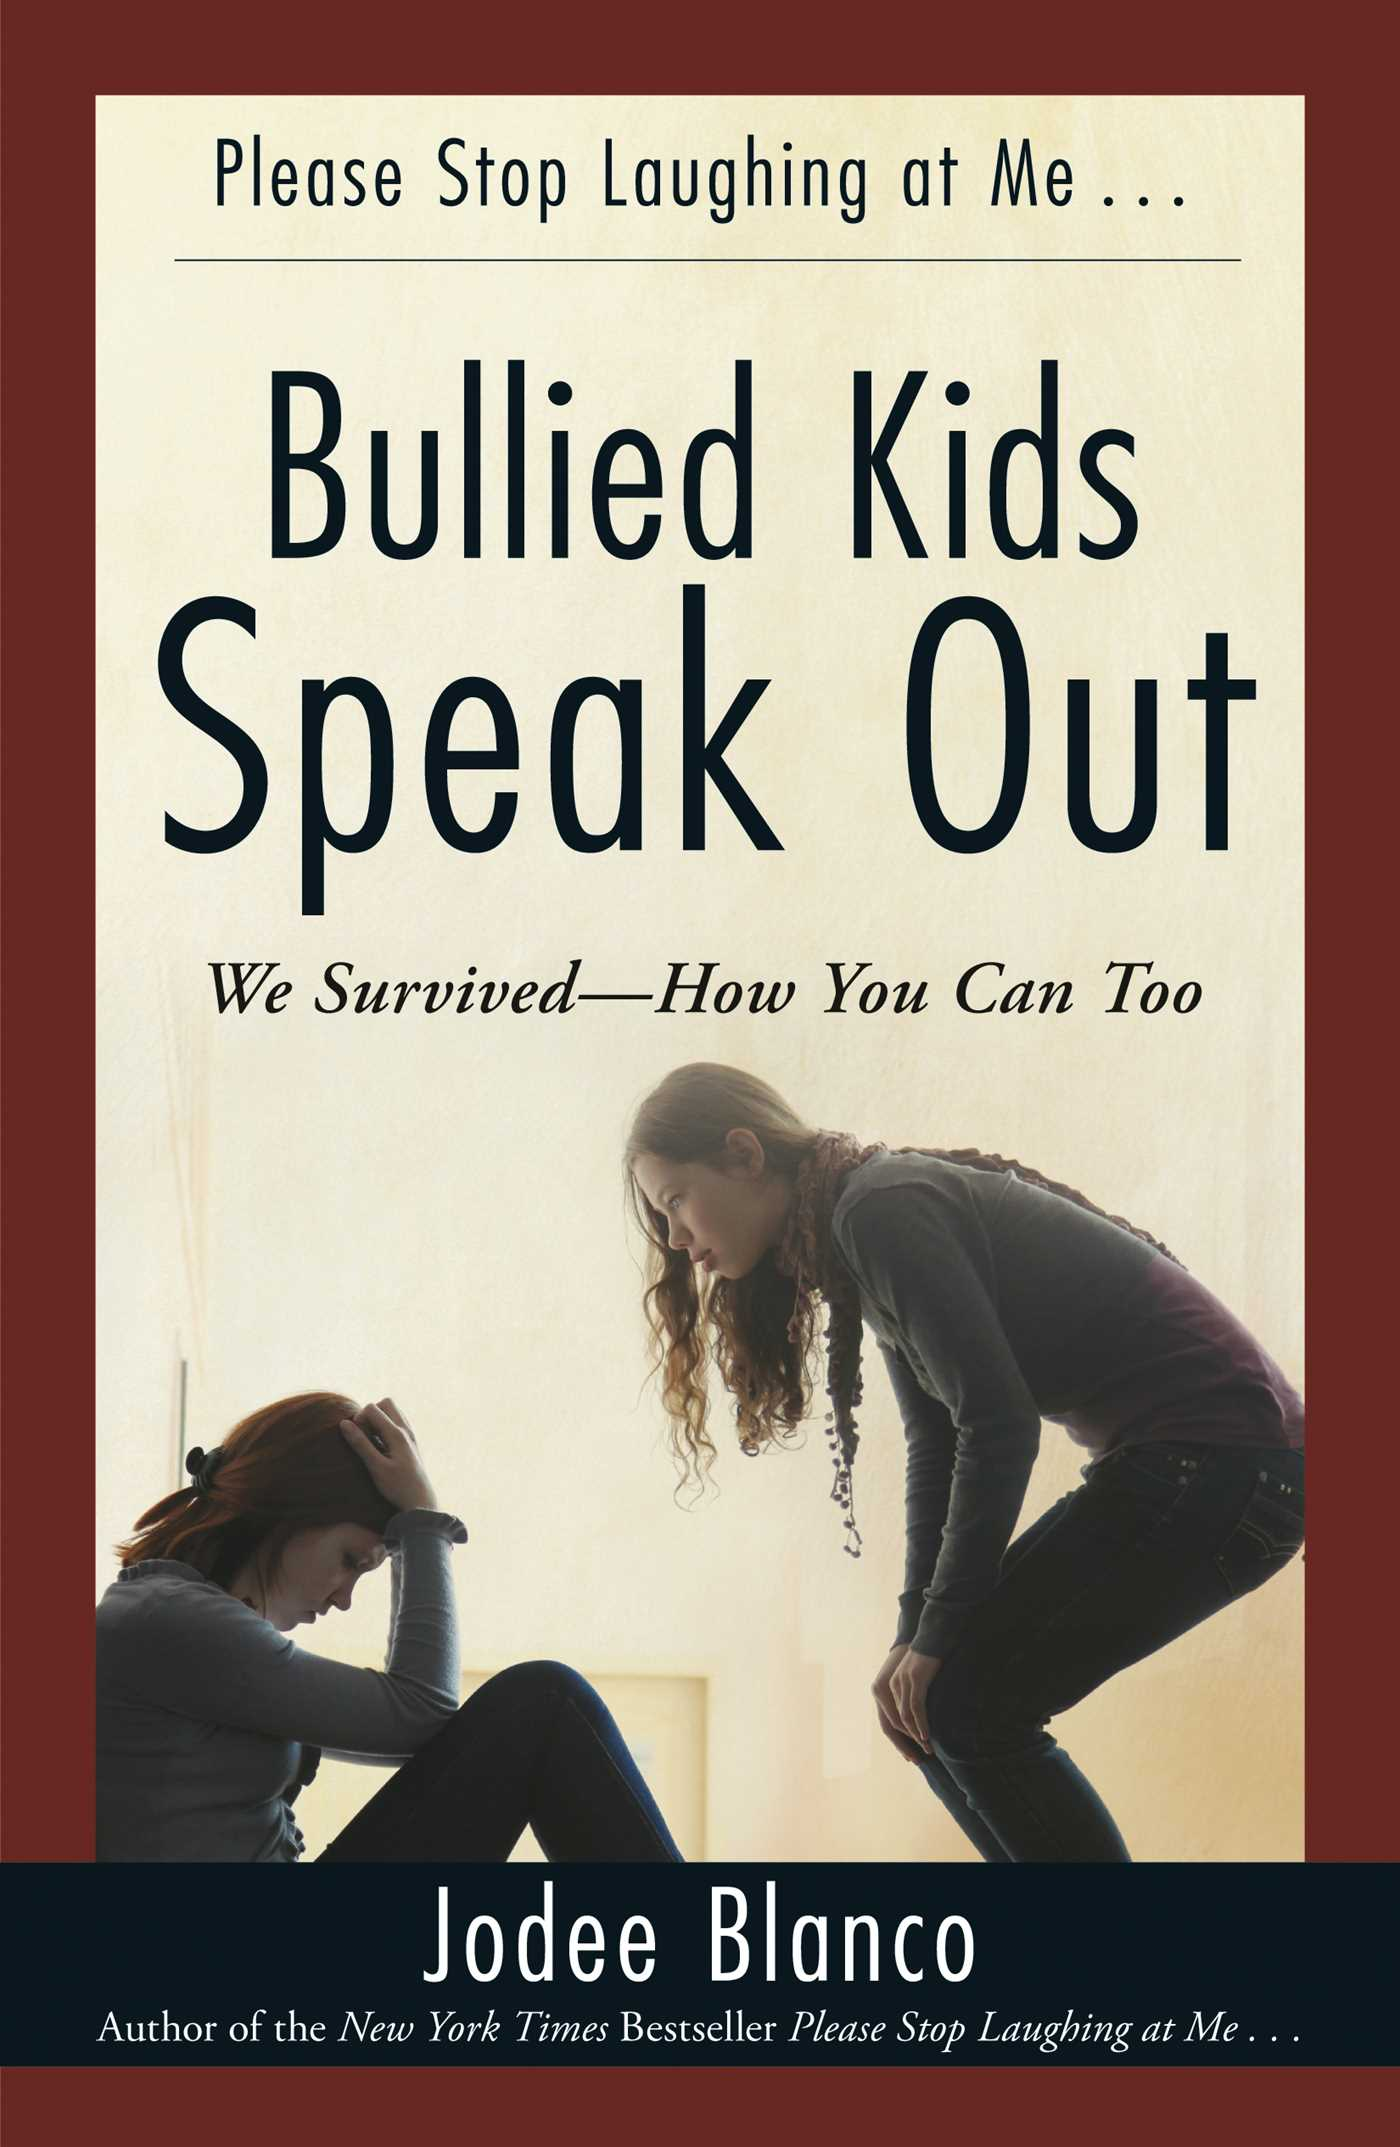 Bullied Kids Speak Out We Survived--How You Can Too